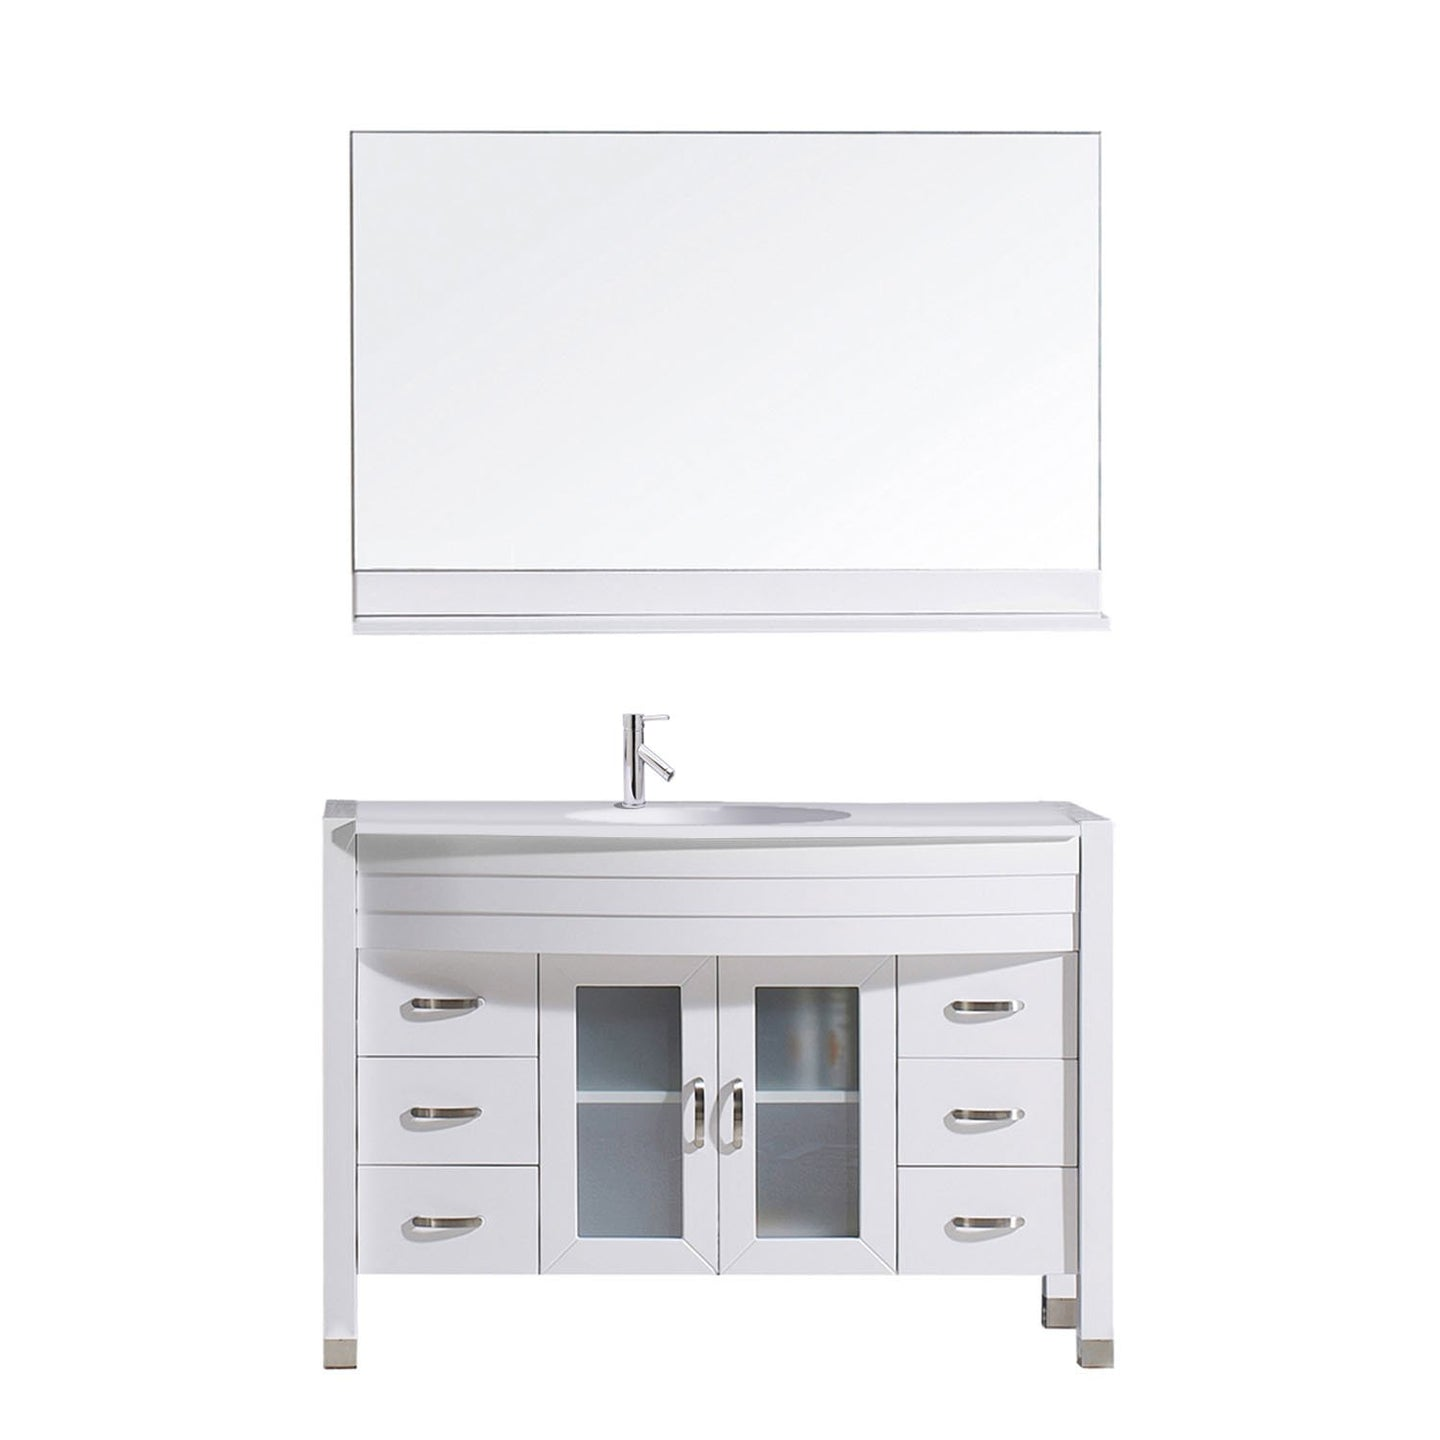 Ava 48″ Single Bathroom Vanity in White with White Engineered Stone Top Round Sink and Polished Chrome Faucet with MIrror